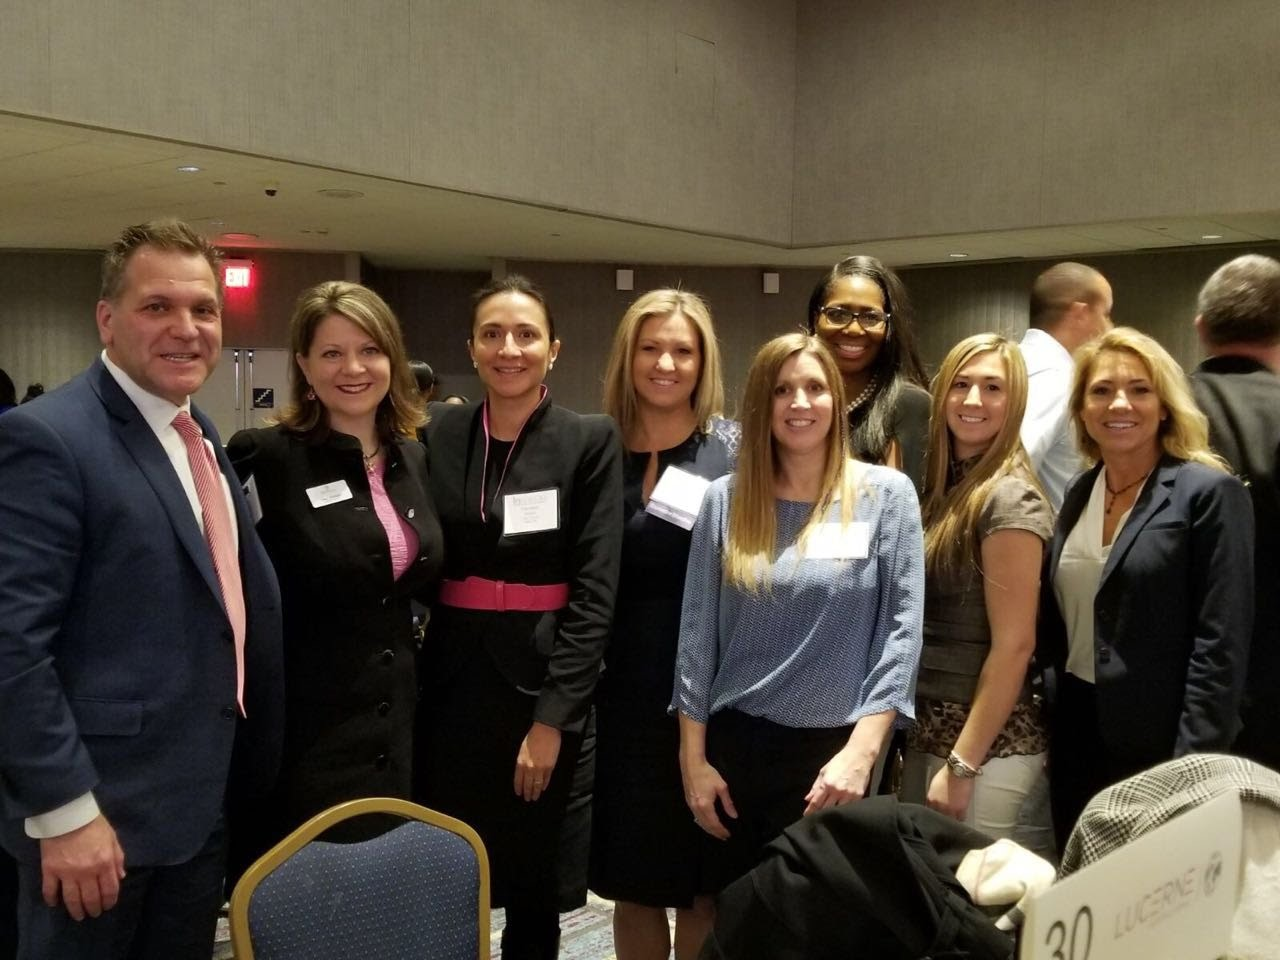 With executives from a Michigan-based Tier 1 supplier Lucerne International at the Detroit Women Association Breakfast, including Mary Buchzeiger, CEO.